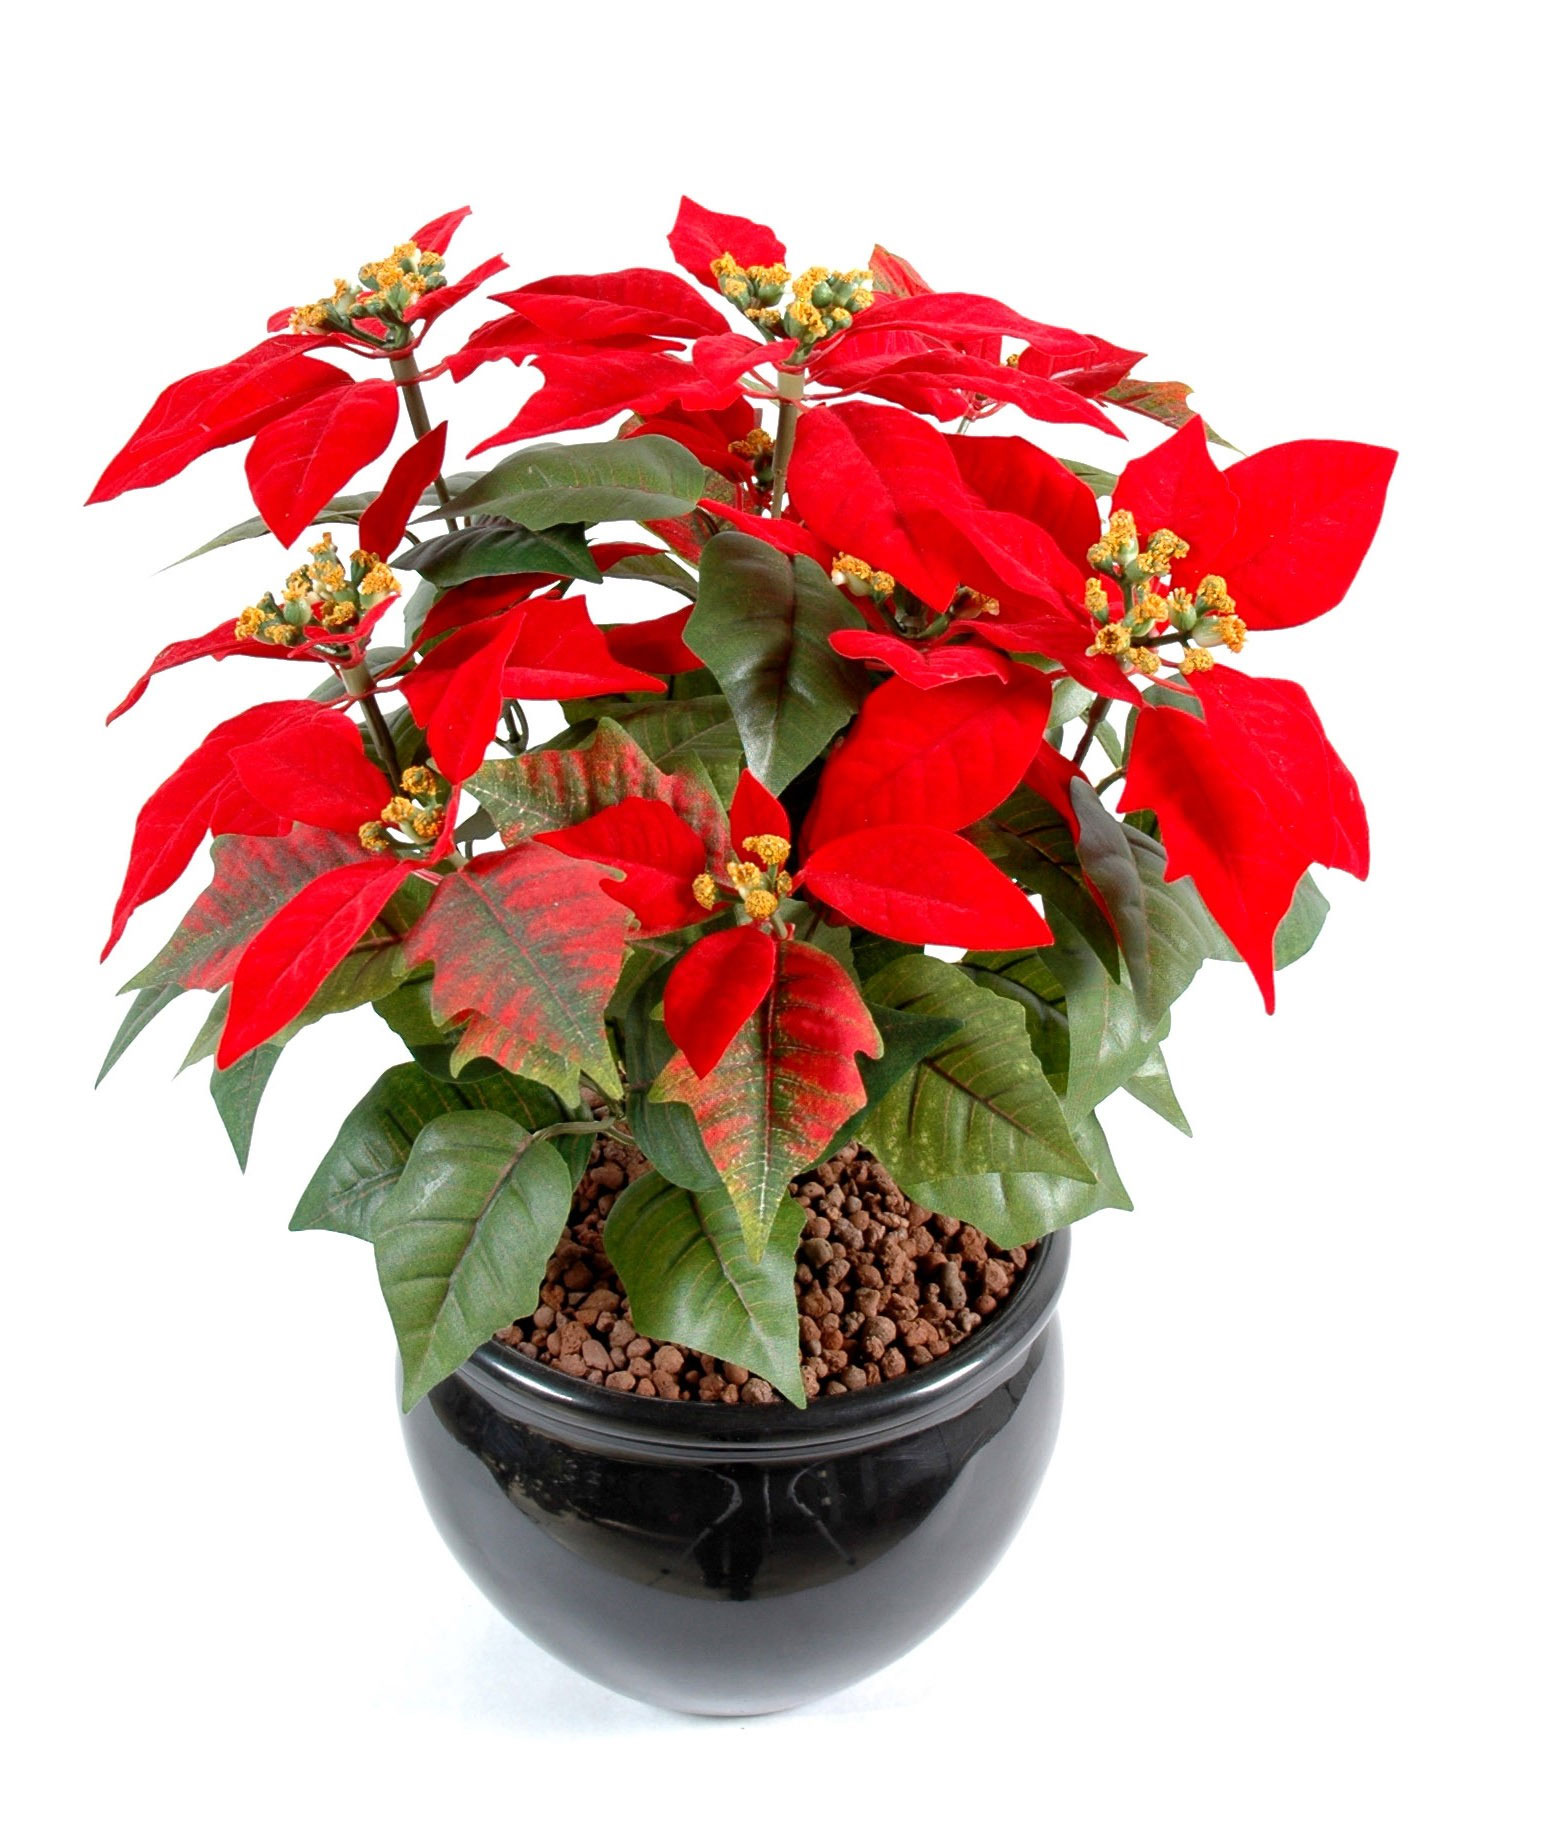 plante-artificielle-poinsetia-rouge-1